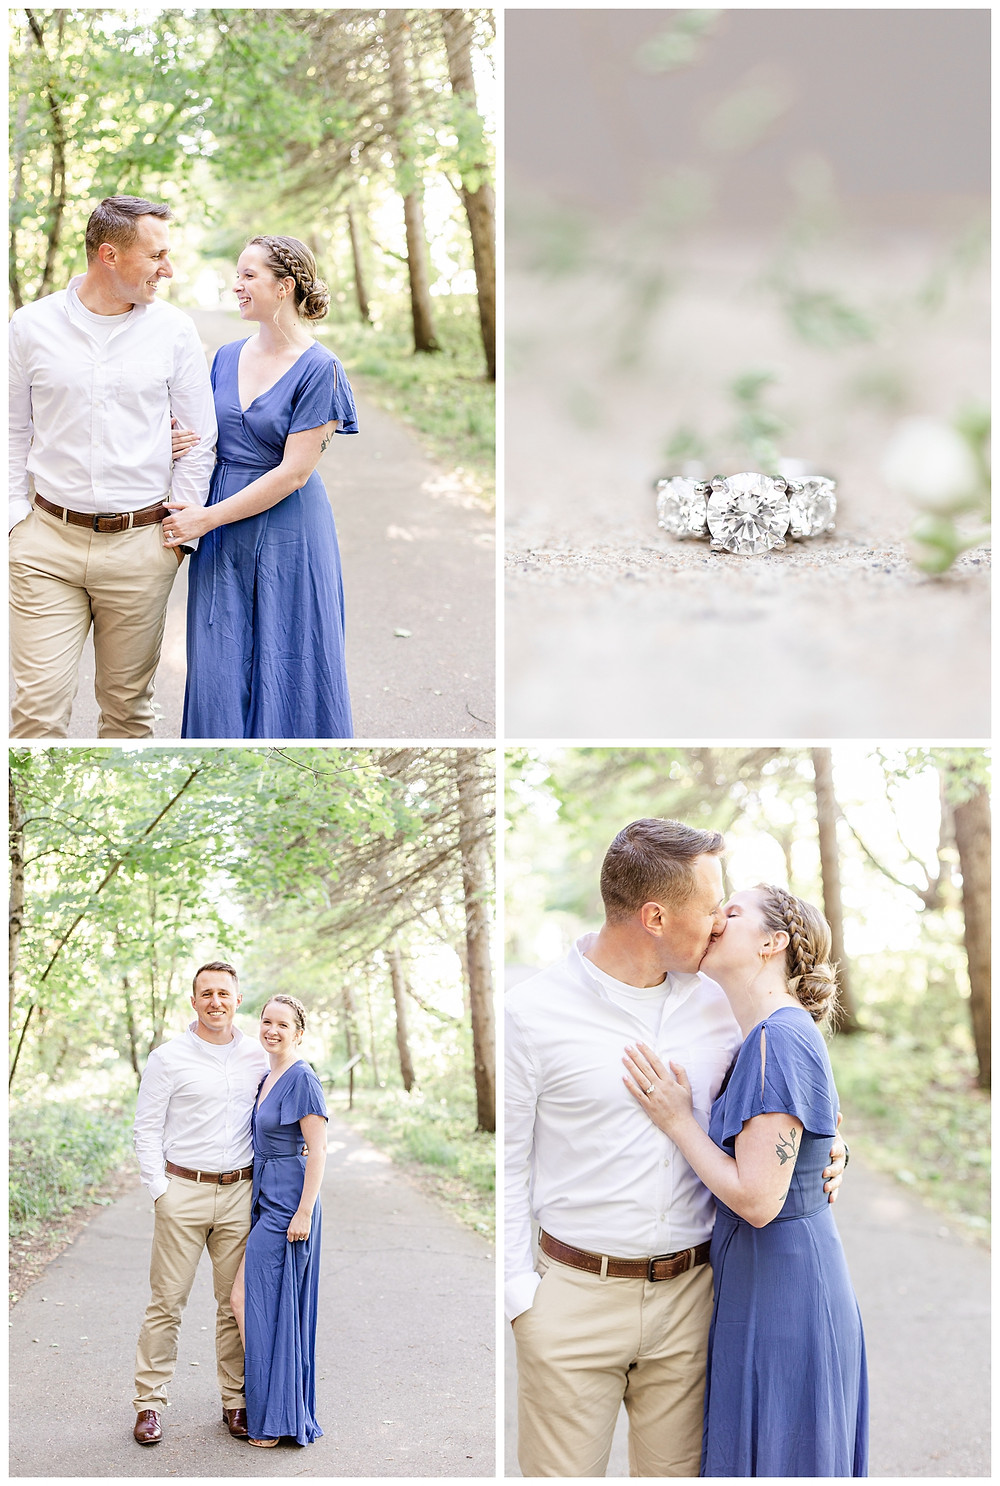 Josh and Andrea wedding photography husband and wife photographer team michigan pictures south haven engagement pictures session fields and woods photo shoot fiance walking ring shot kissing